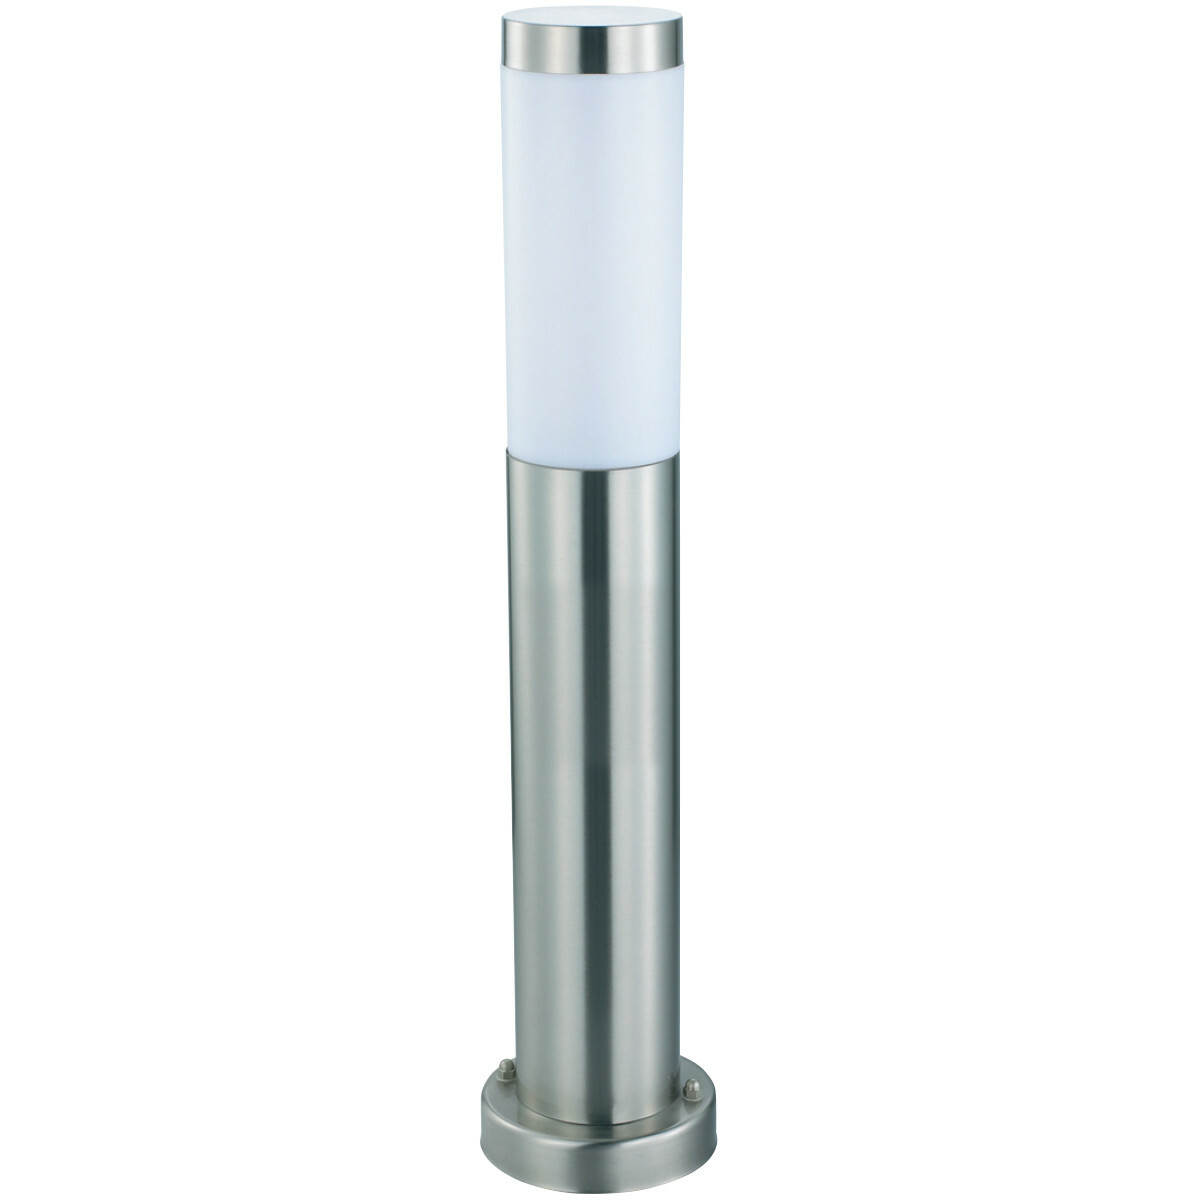 PHILIPS - LED Tuinverlichting - Staande Buitenlamp - SceneSwitch 827 A60 - Laurea 4 - E27 Fitting -